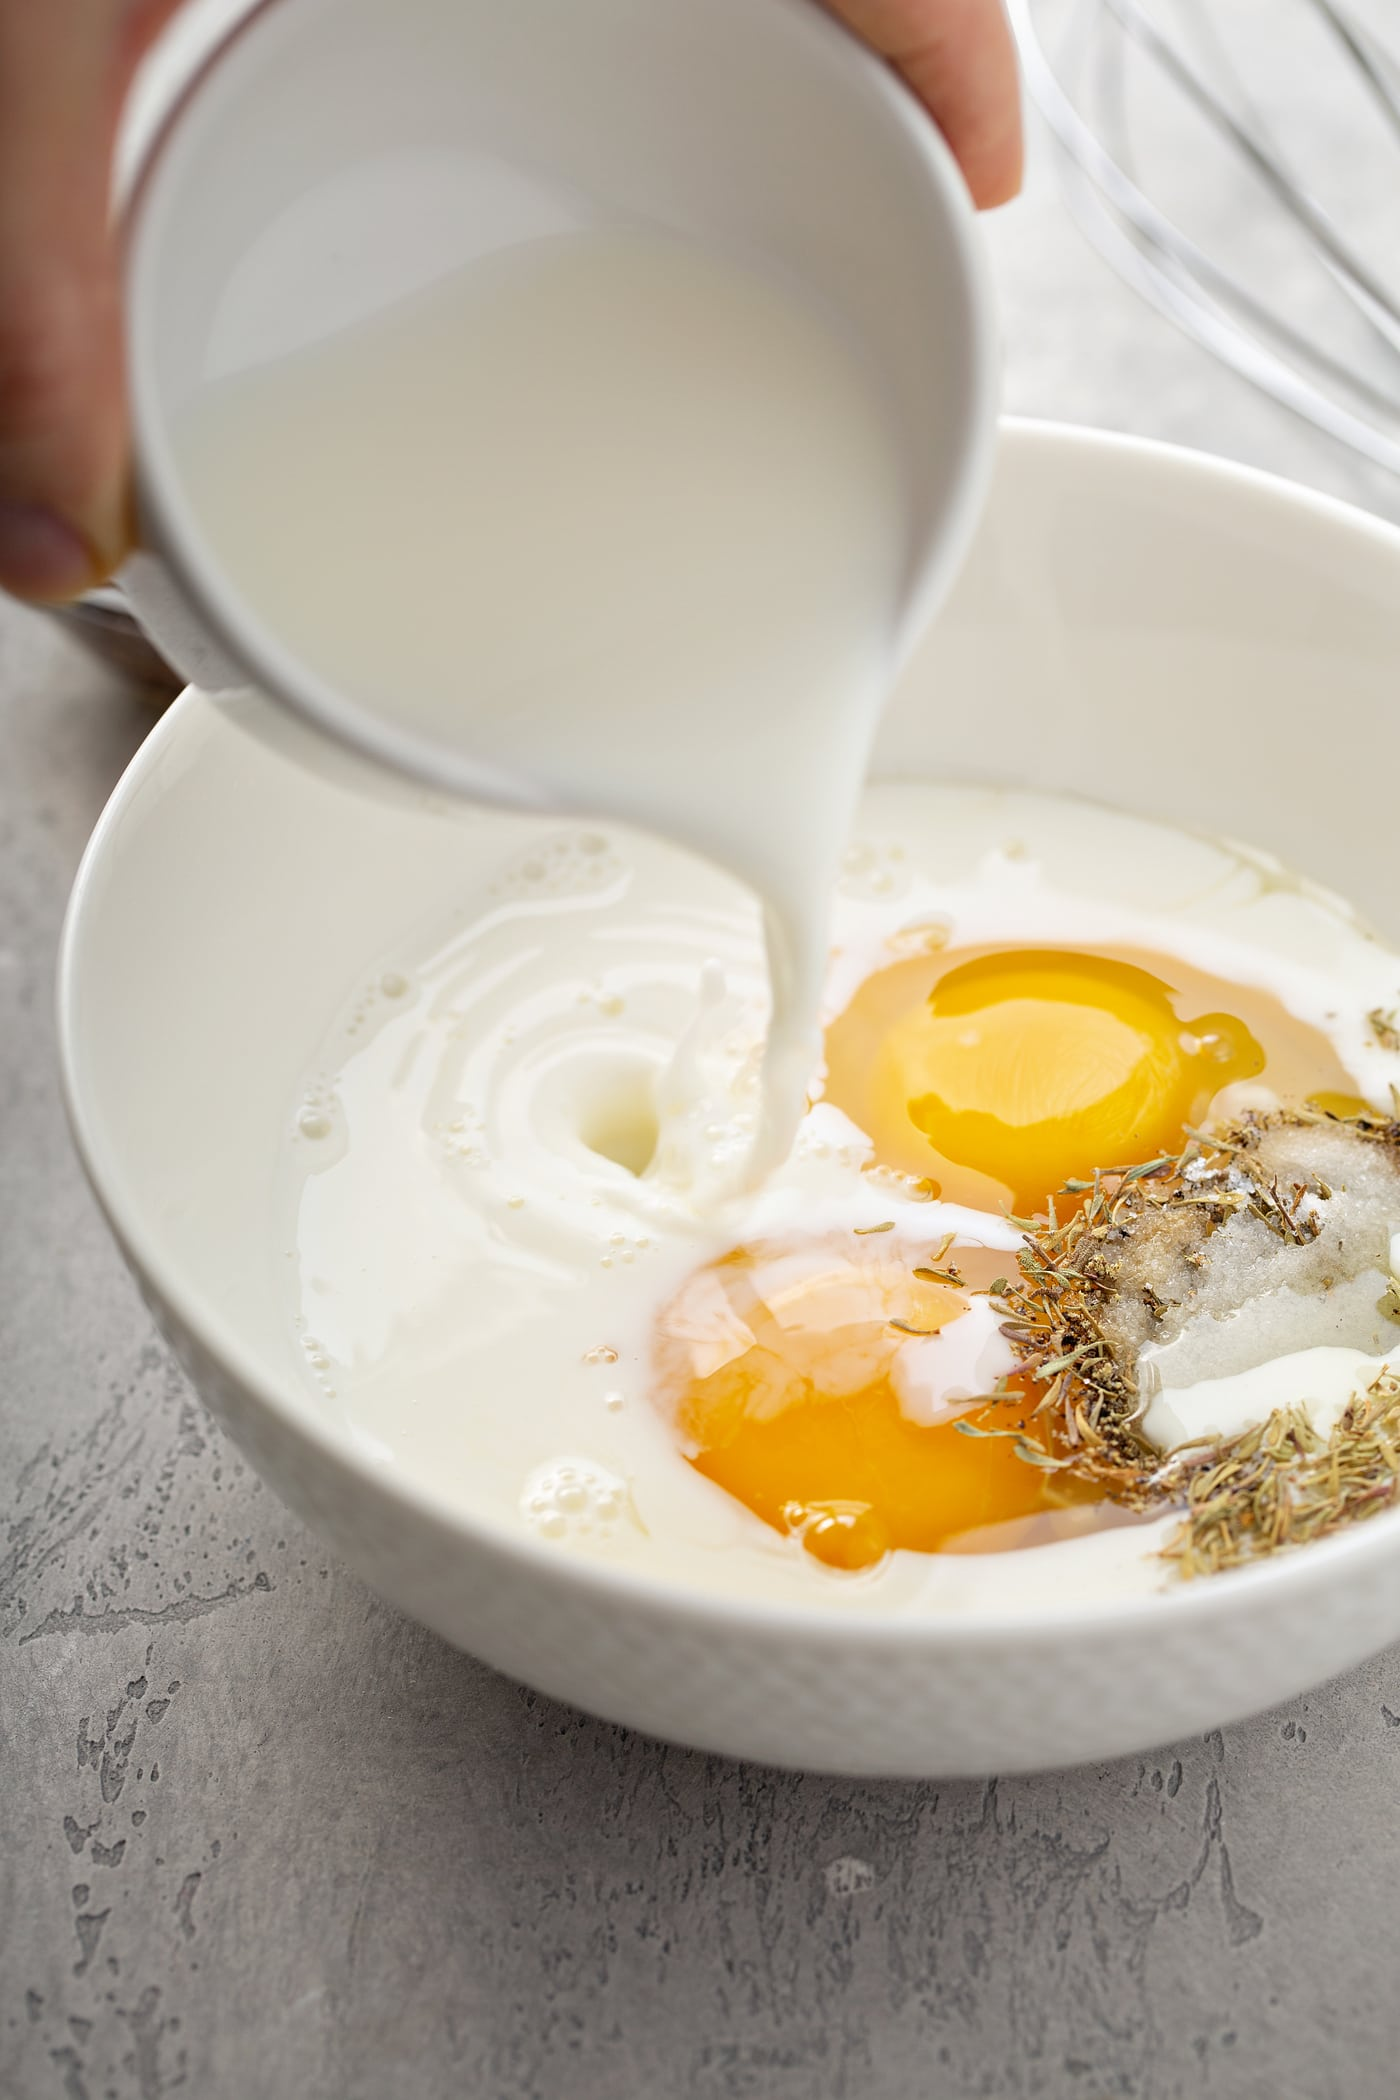 A large bowl containing two eggs, and spices, with milk being poured onto the bowl.